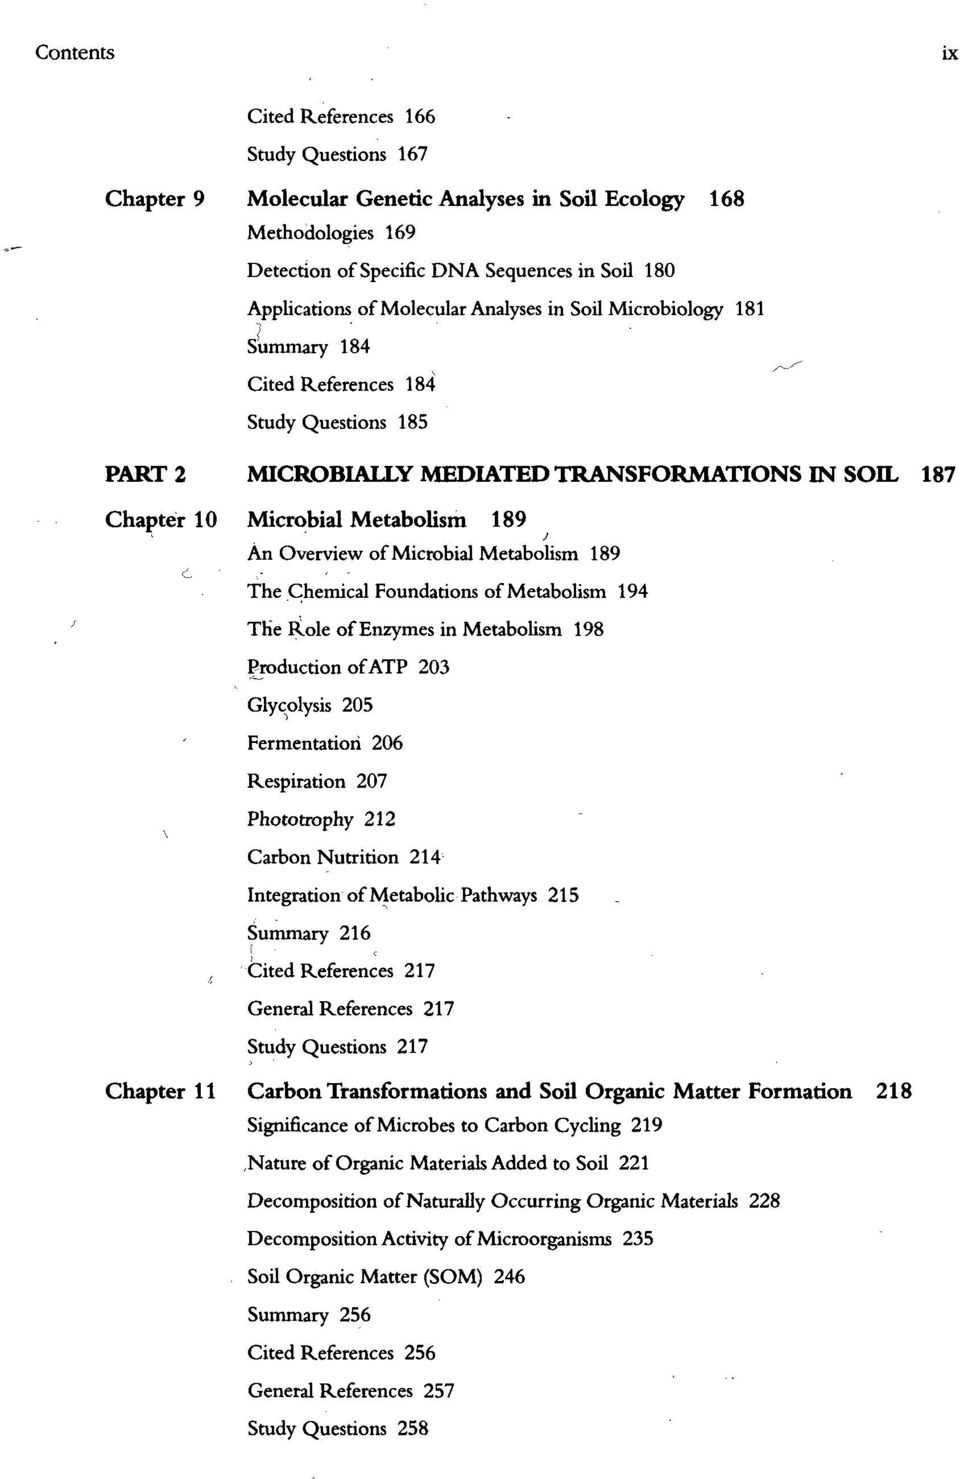 Microbial Metabolism 189 The Chemical Foundations of Metabolism 194 The Role of Enzymes in Metabolism 198 Production of ATP 203 Glycolysis 205 Fermentation 206 Respiration 207 Phototrophy 212 Carbon